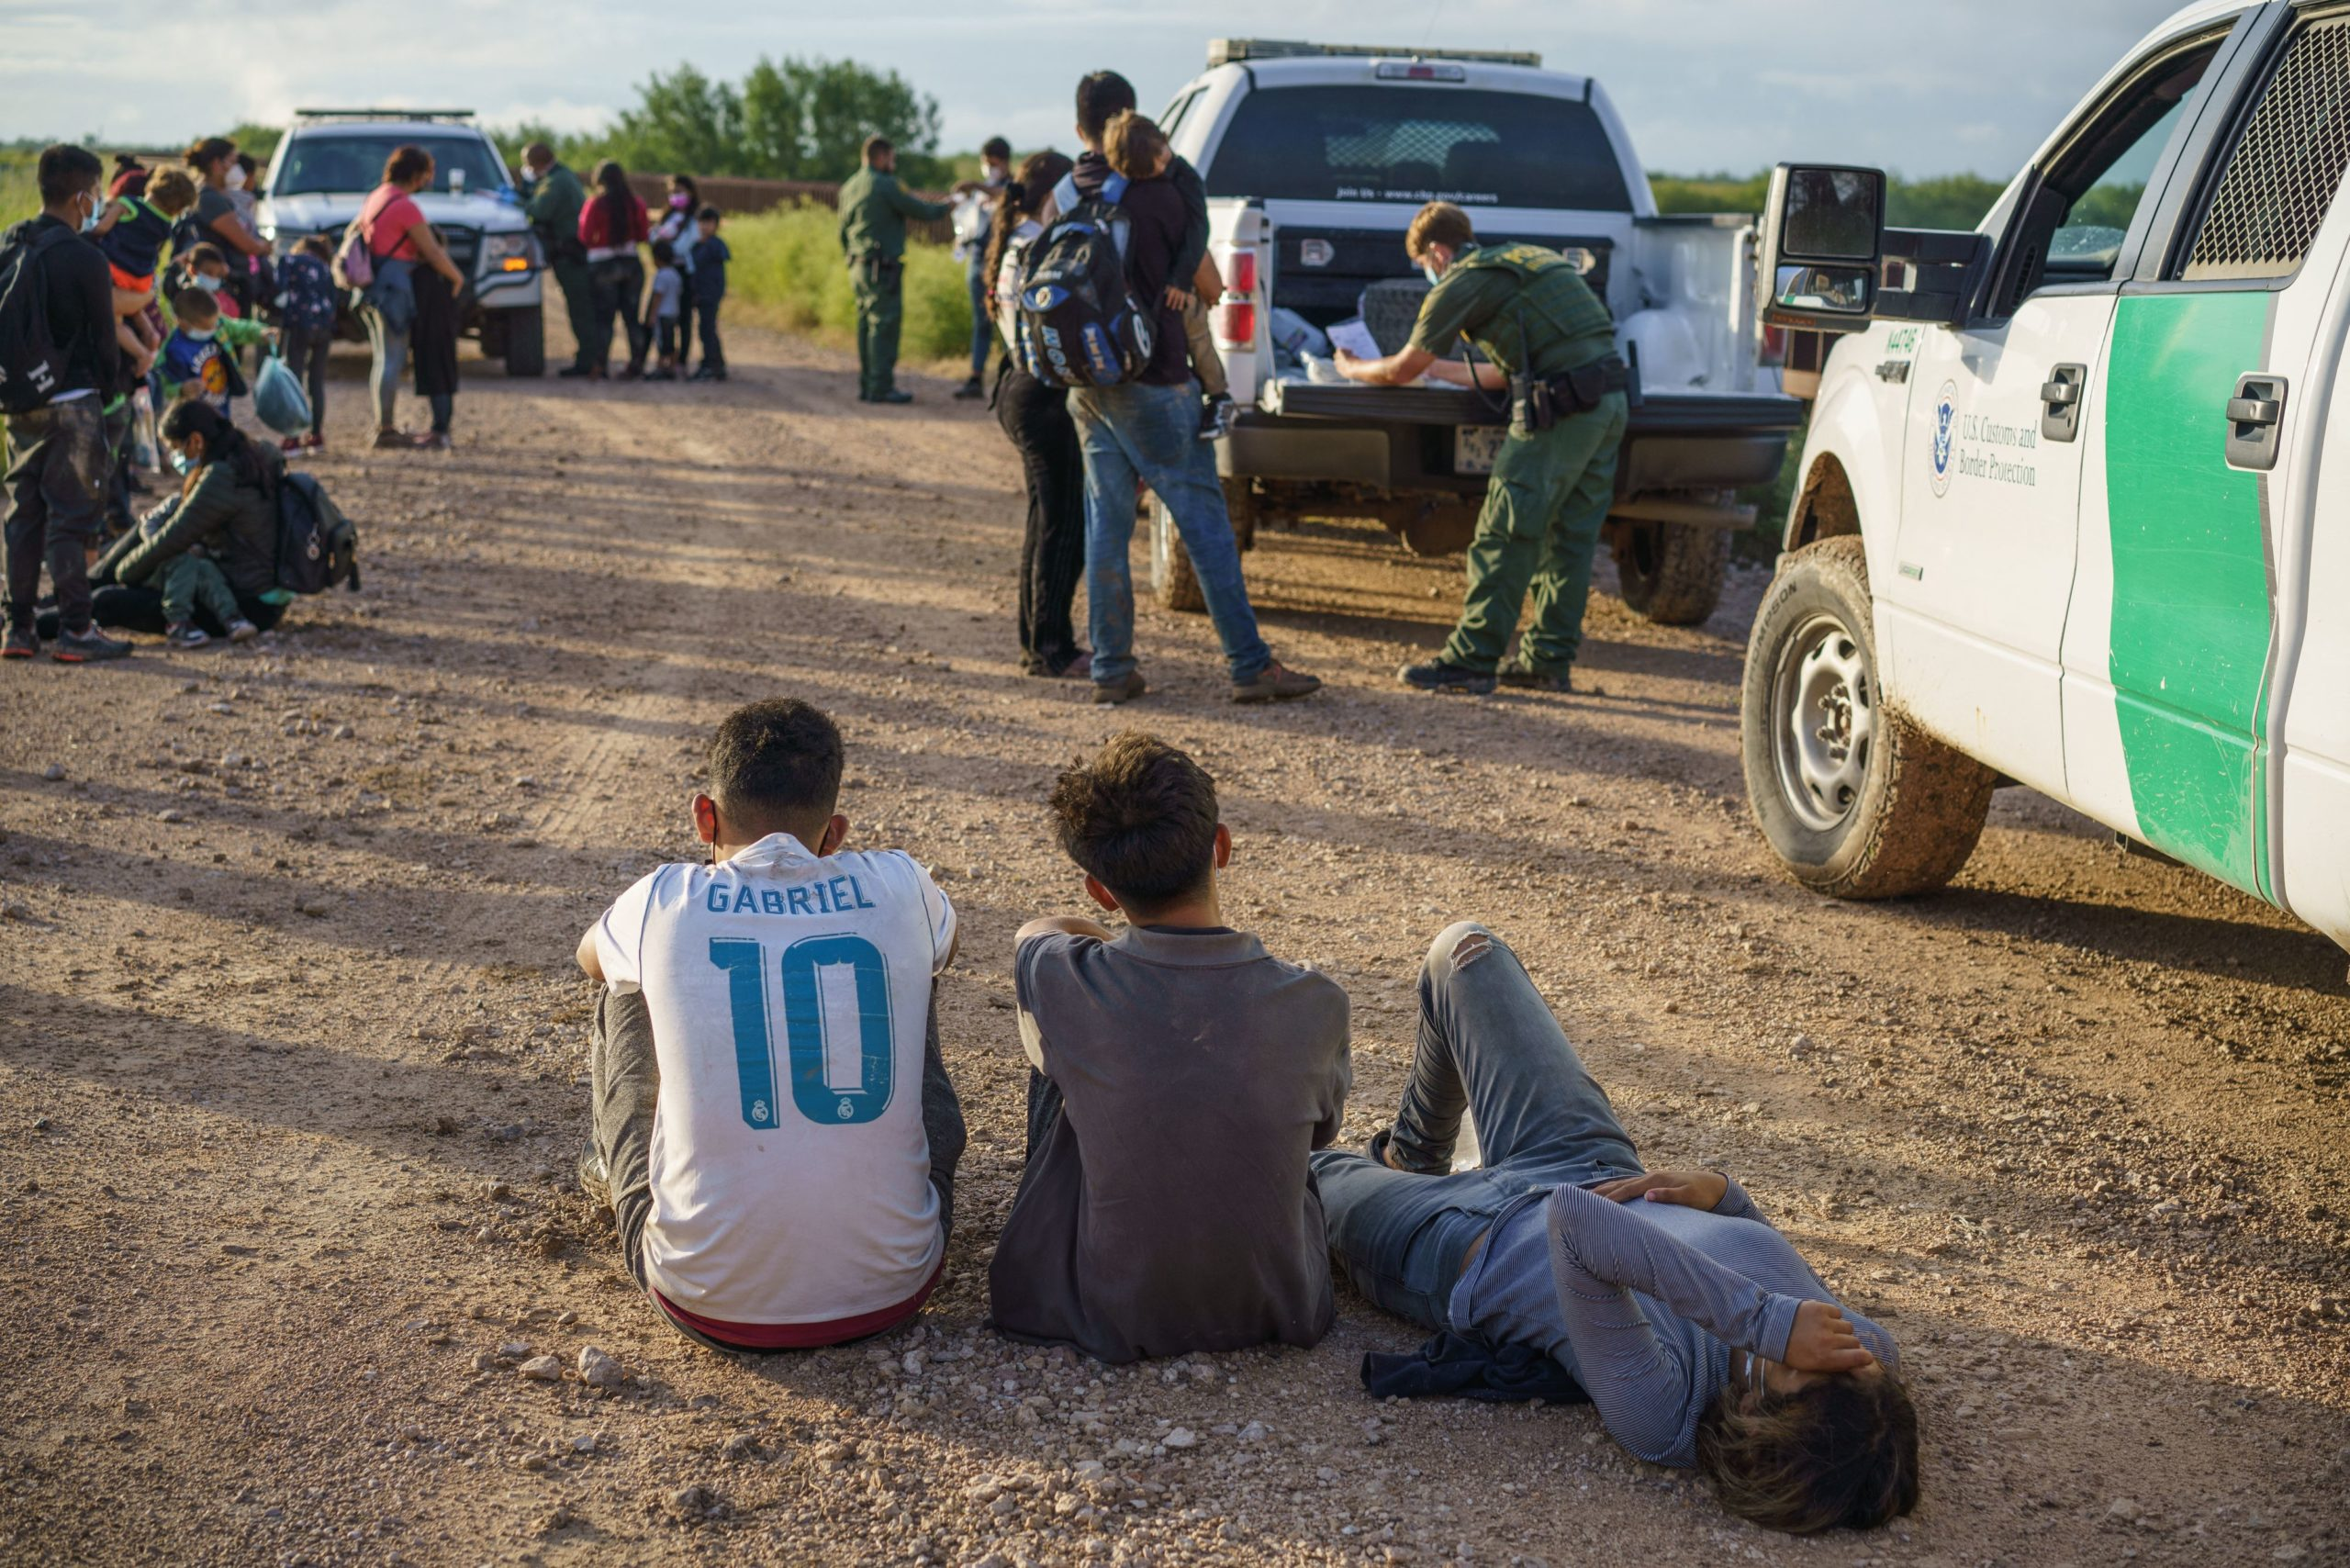 Migrants wait to be processed by the United States Border Patrol after crossing the US-Mexico border into the United States in Penitas, Texas on July 8, 2021. (Photo by PAUL RATJE/AFP via Getty Images)